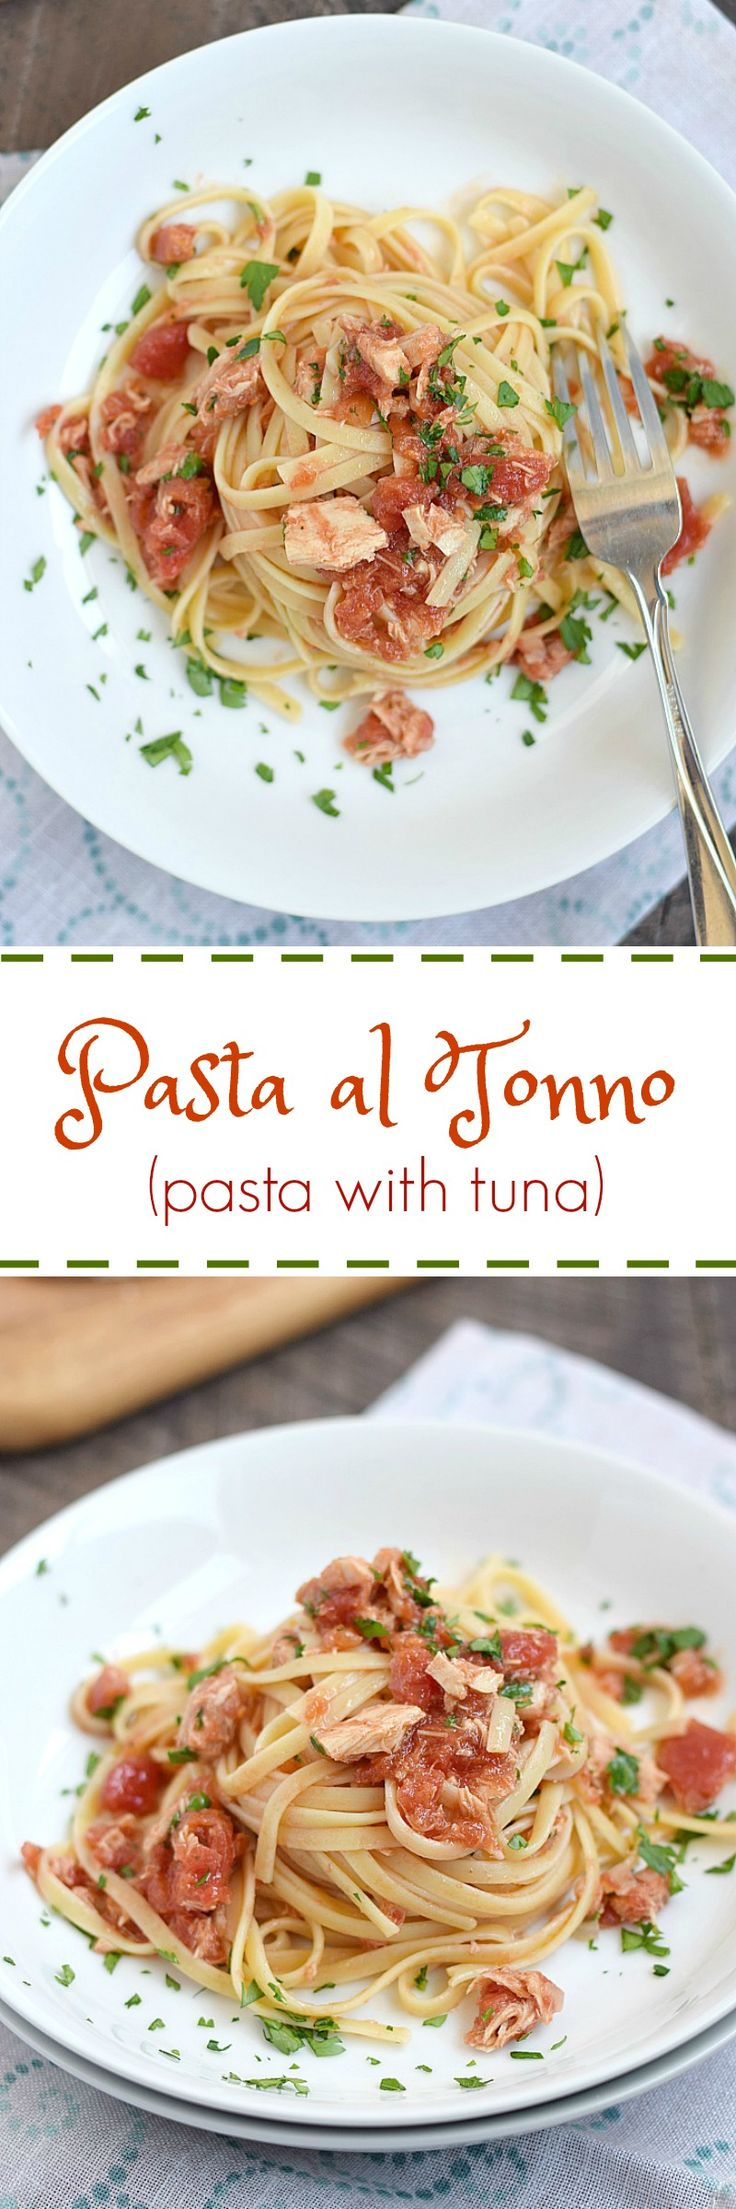 This classic Italian Pasta al Tonno is the perfect light meal that comes together in minutes with items in your pantry | cookingwithcurls.com